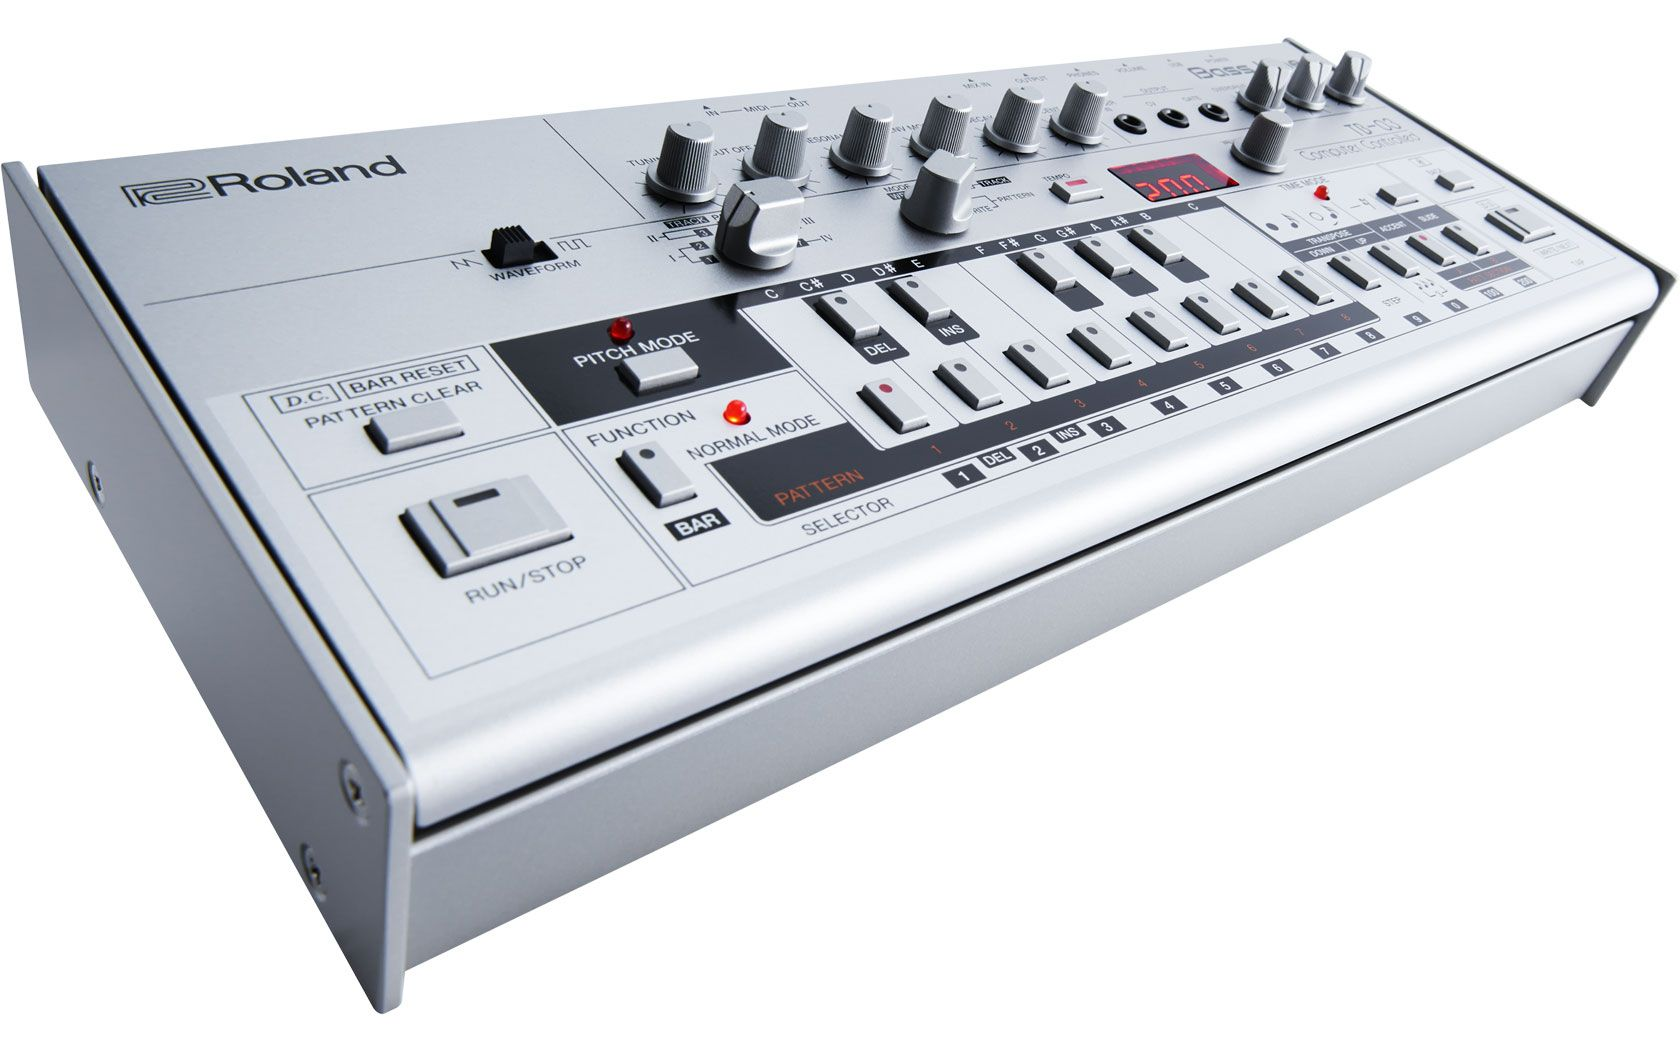 https://www.roland.it/products/tb-03/